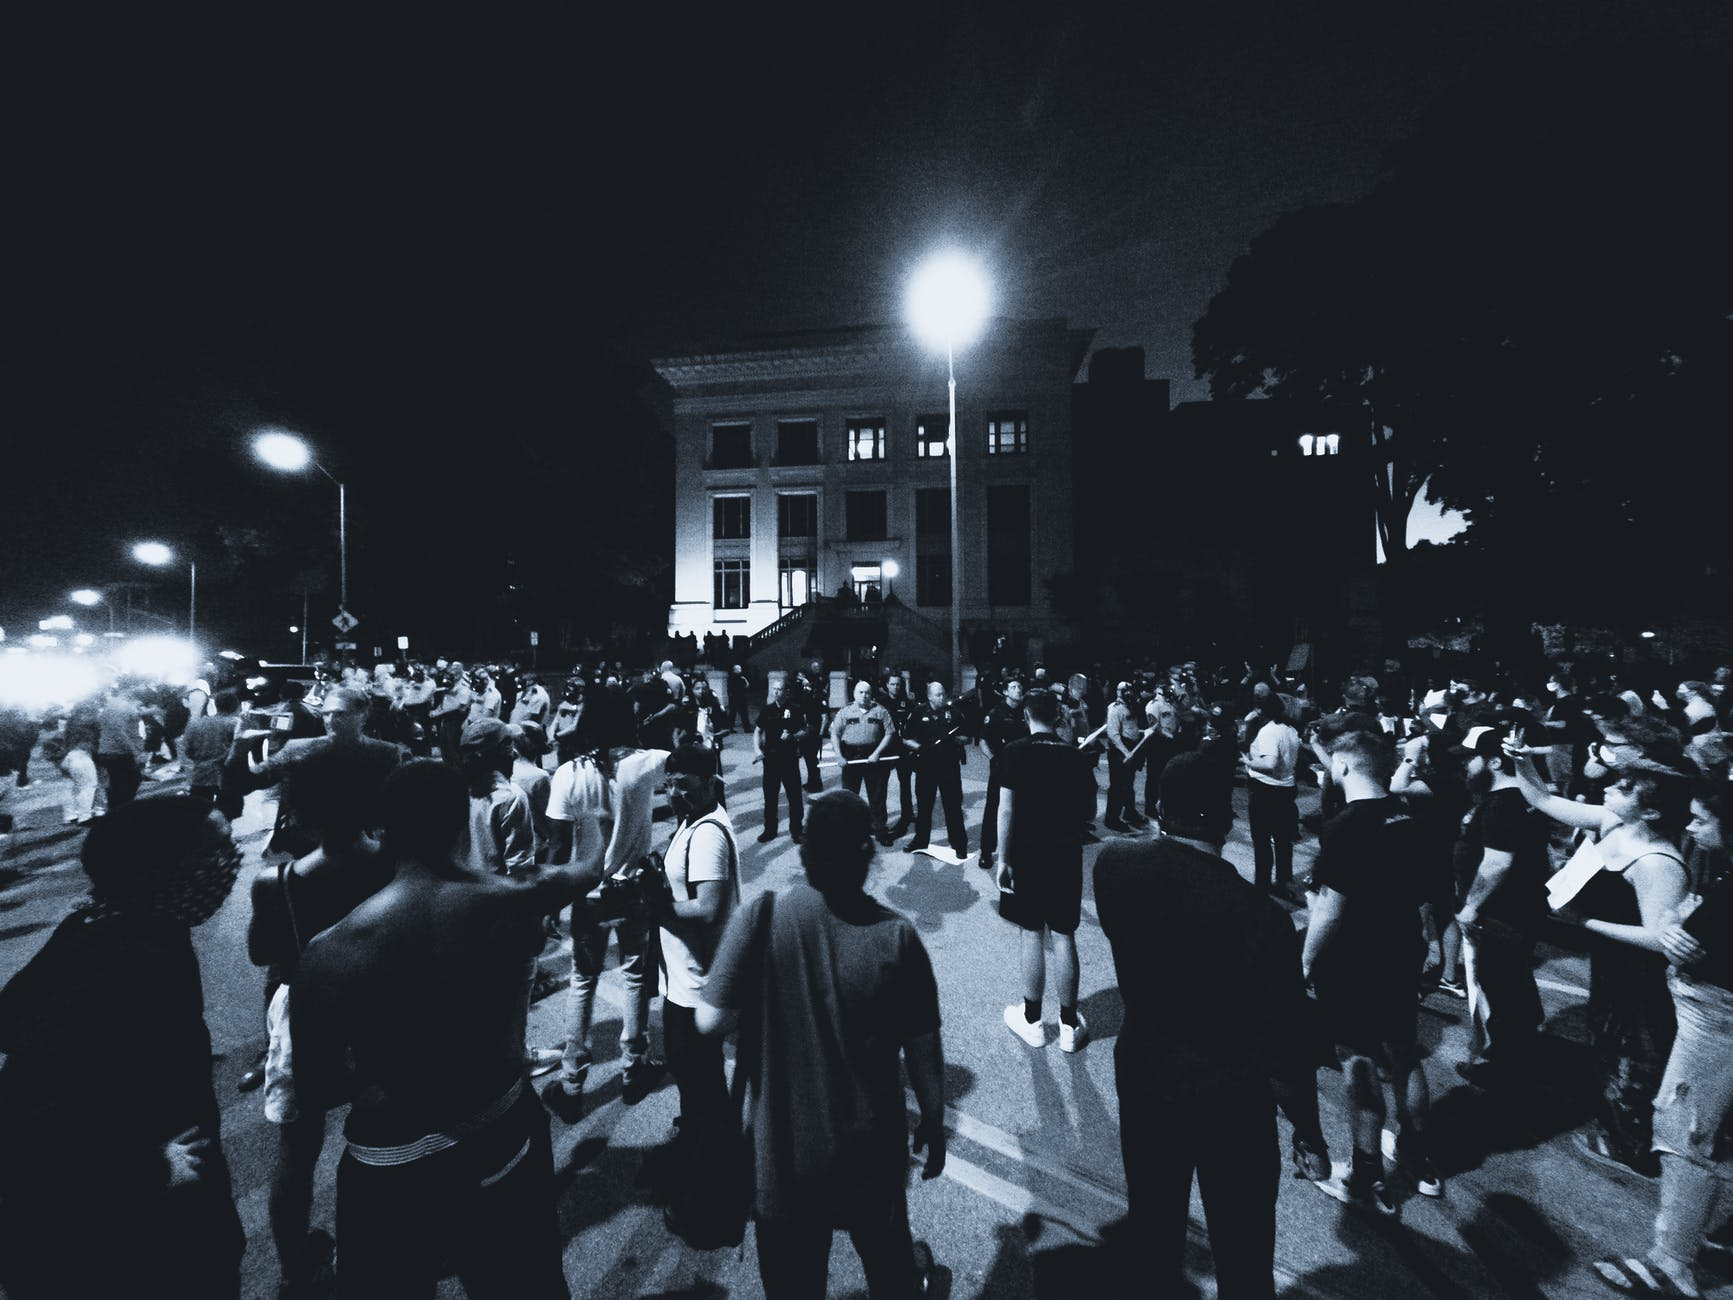 grayscale photo of protesters on a street